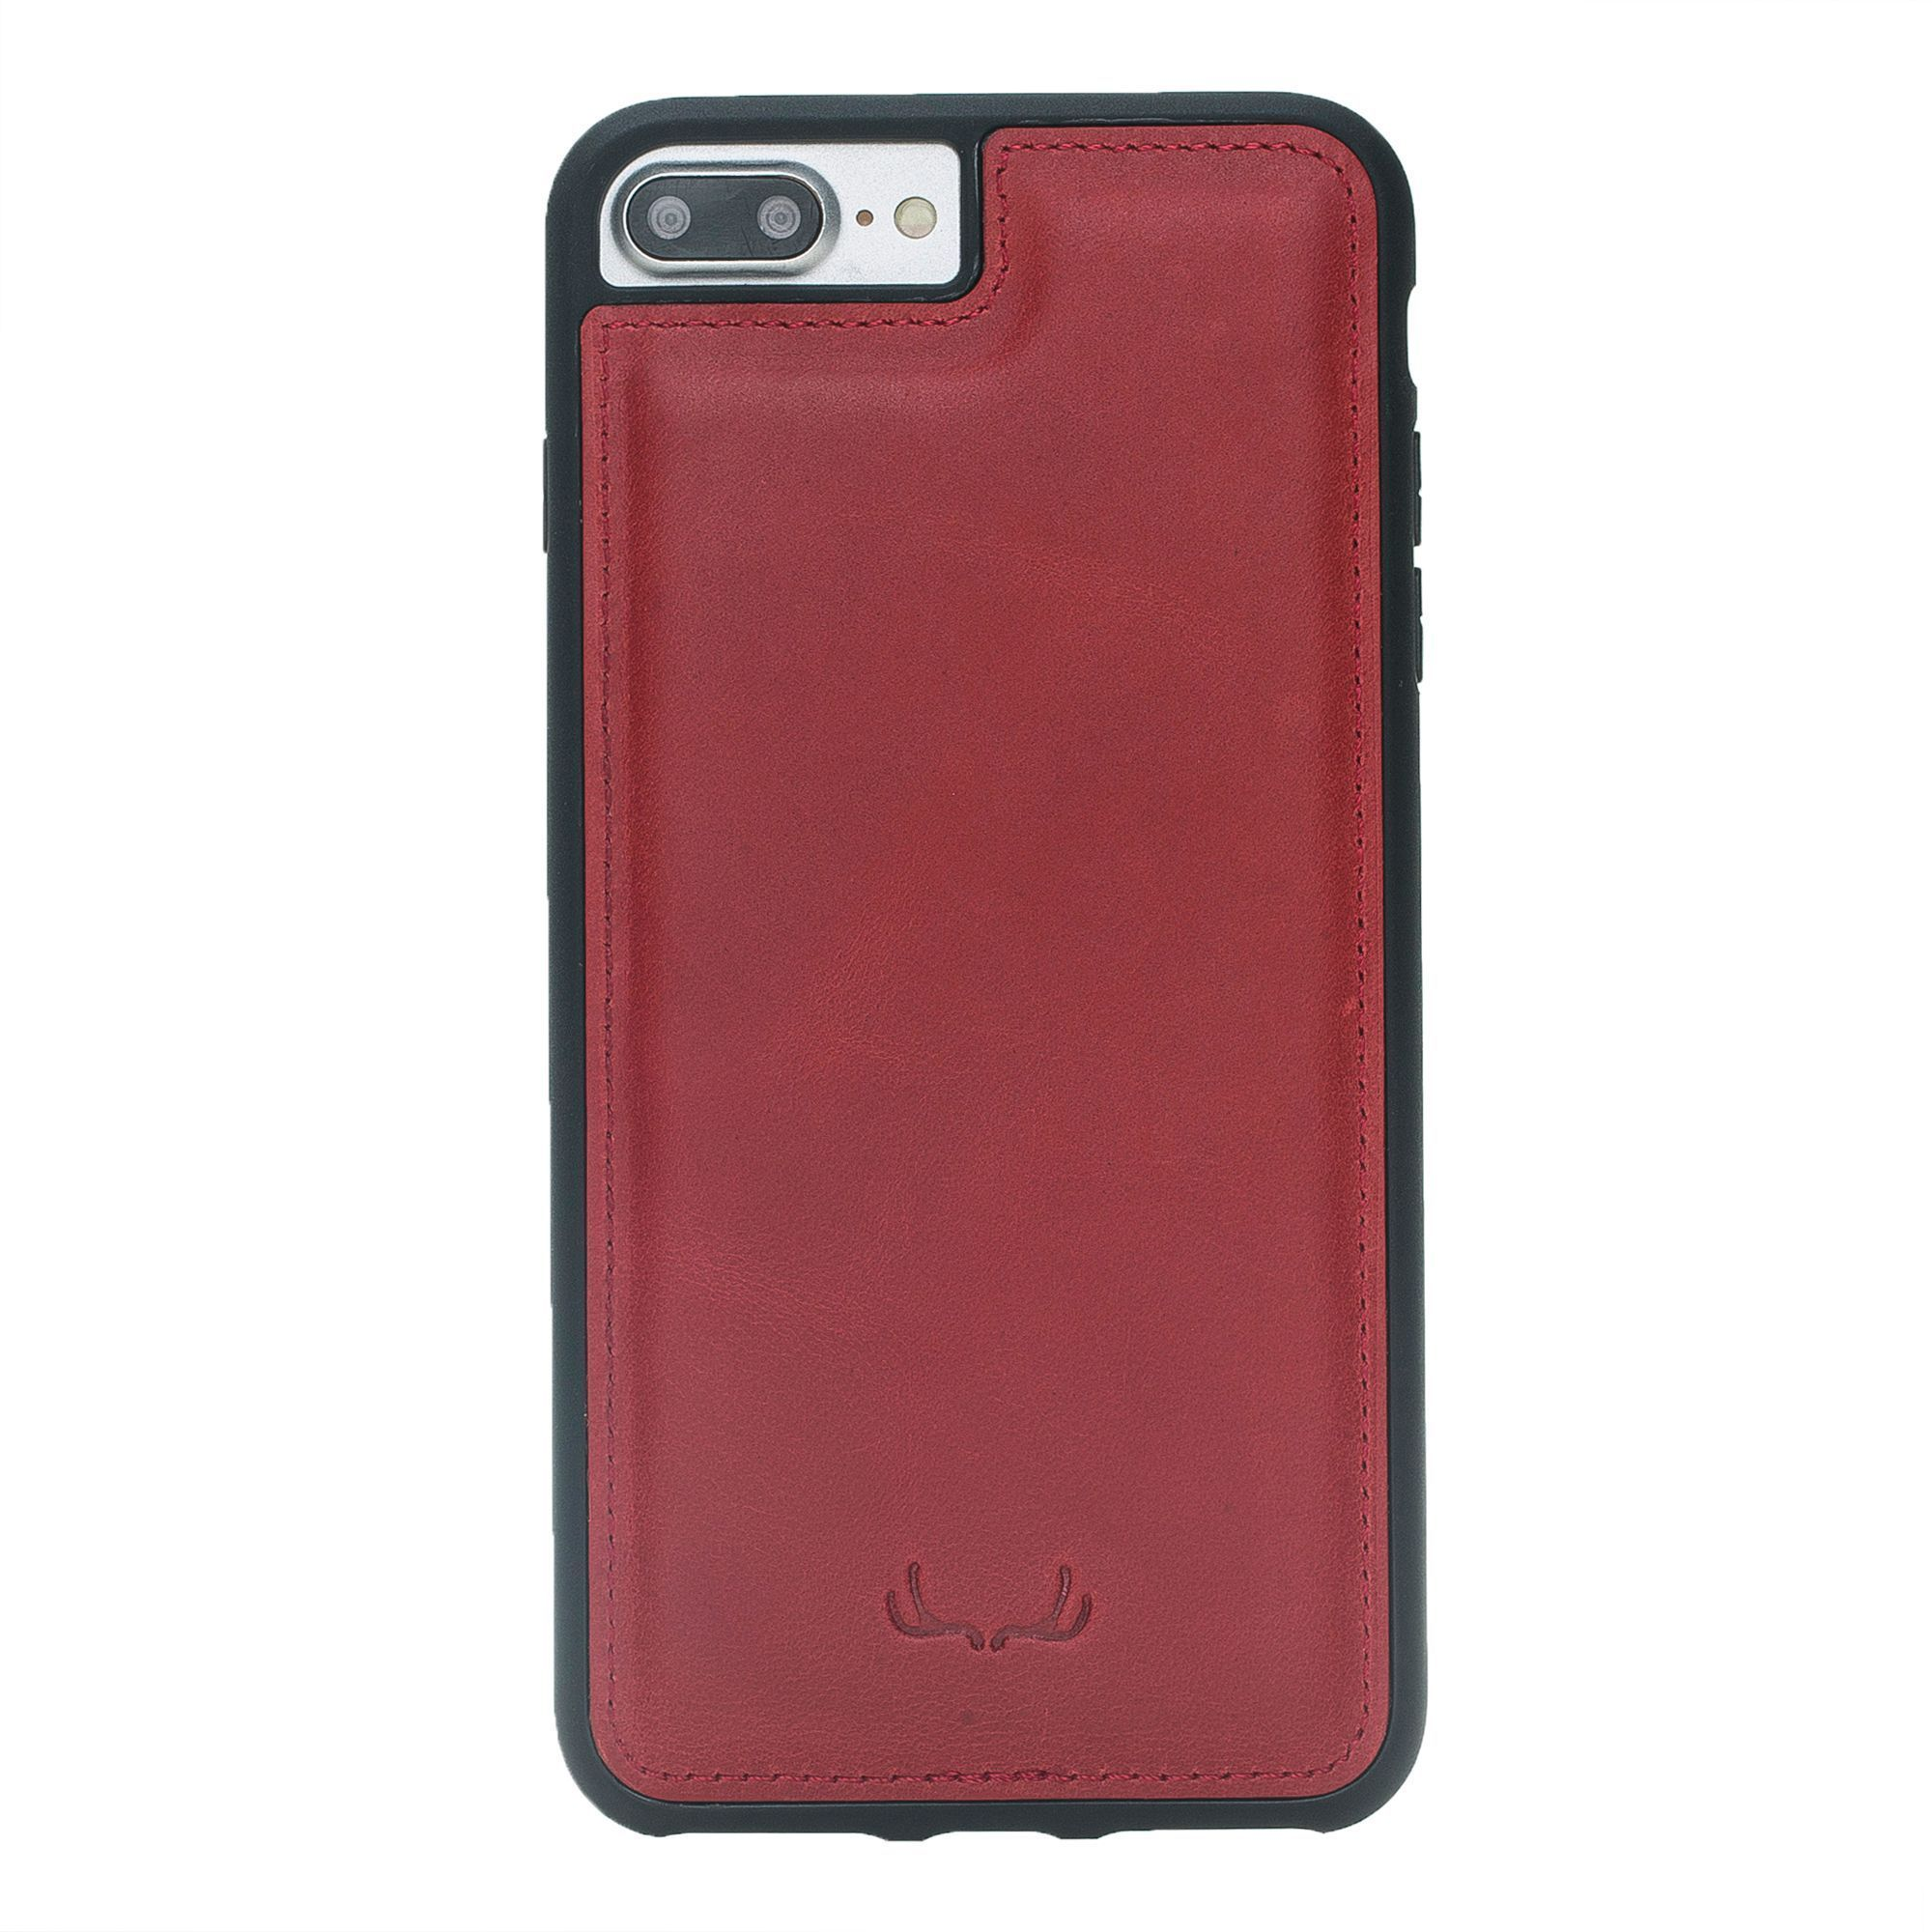 BNT Flex Cover Leather Cases - Crazy - iPhone 7 Plus/ 8 Plus - Red